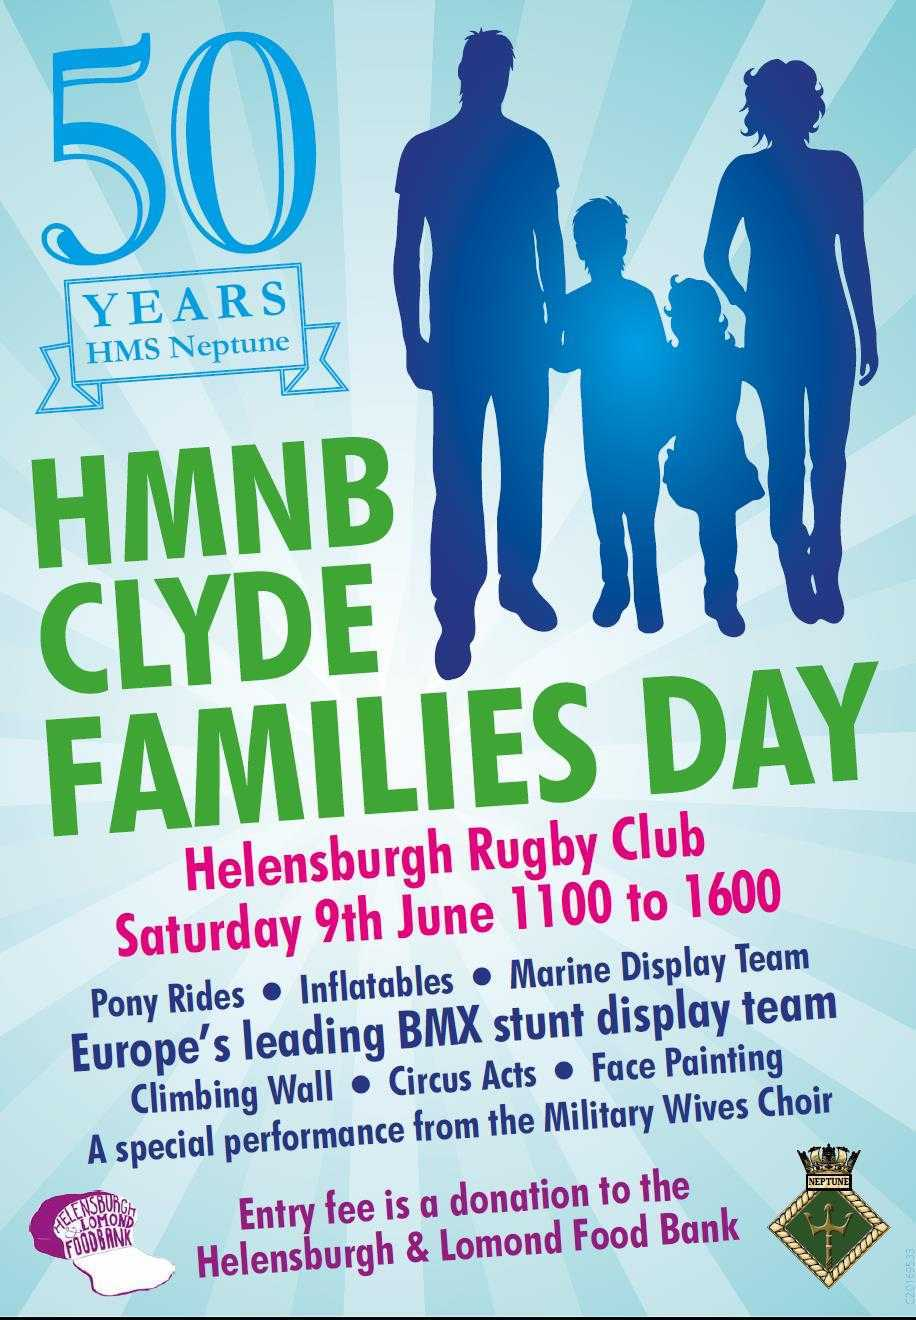 The event takes place on Saturday, June 9 at Helensburgh Rugby Club